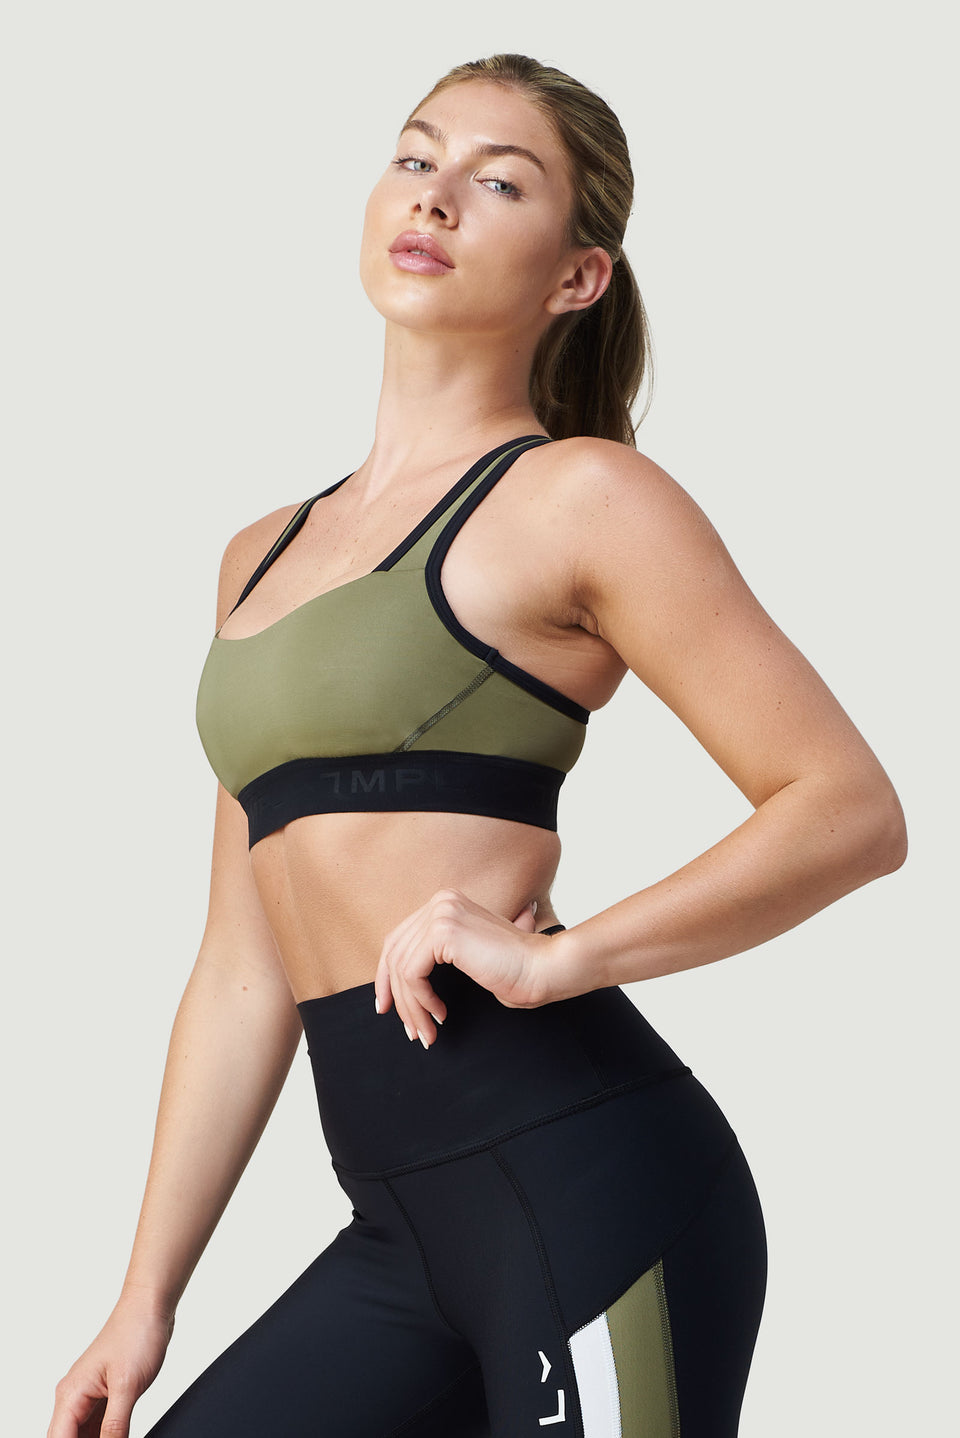 Awoke Women's High Impact Sports Bra